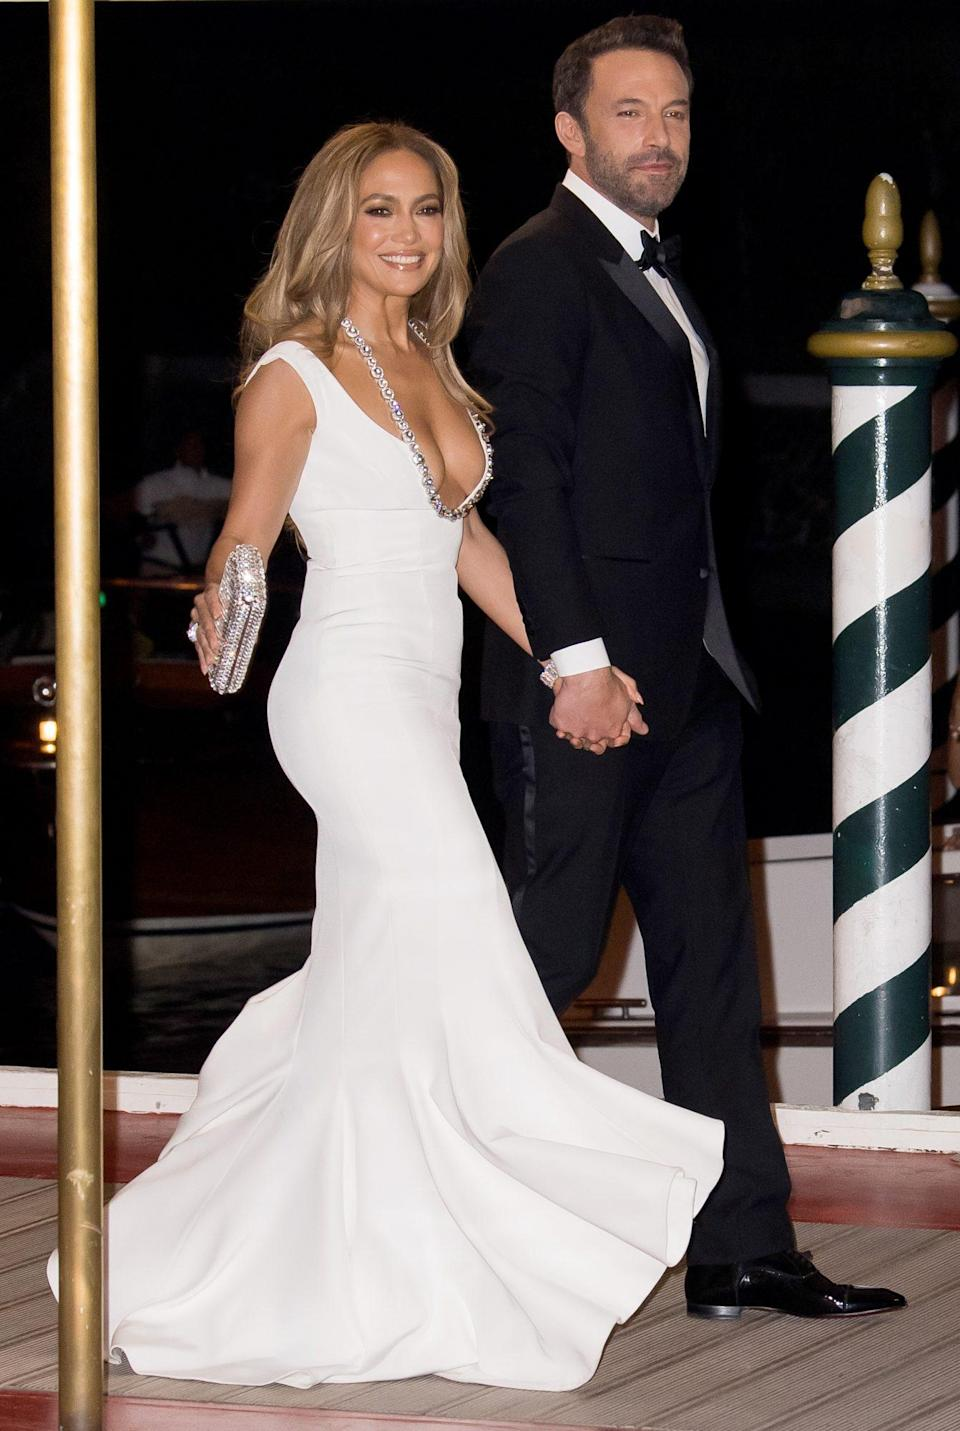 <p>Way to make an entrance! The pair turned heads as they arrived at the September 2021 Venice Film Festival premiere of<i> The Last Duel,</i> which Affleck co-wrote and stars in, in full old-Hollywood glamour. </p>